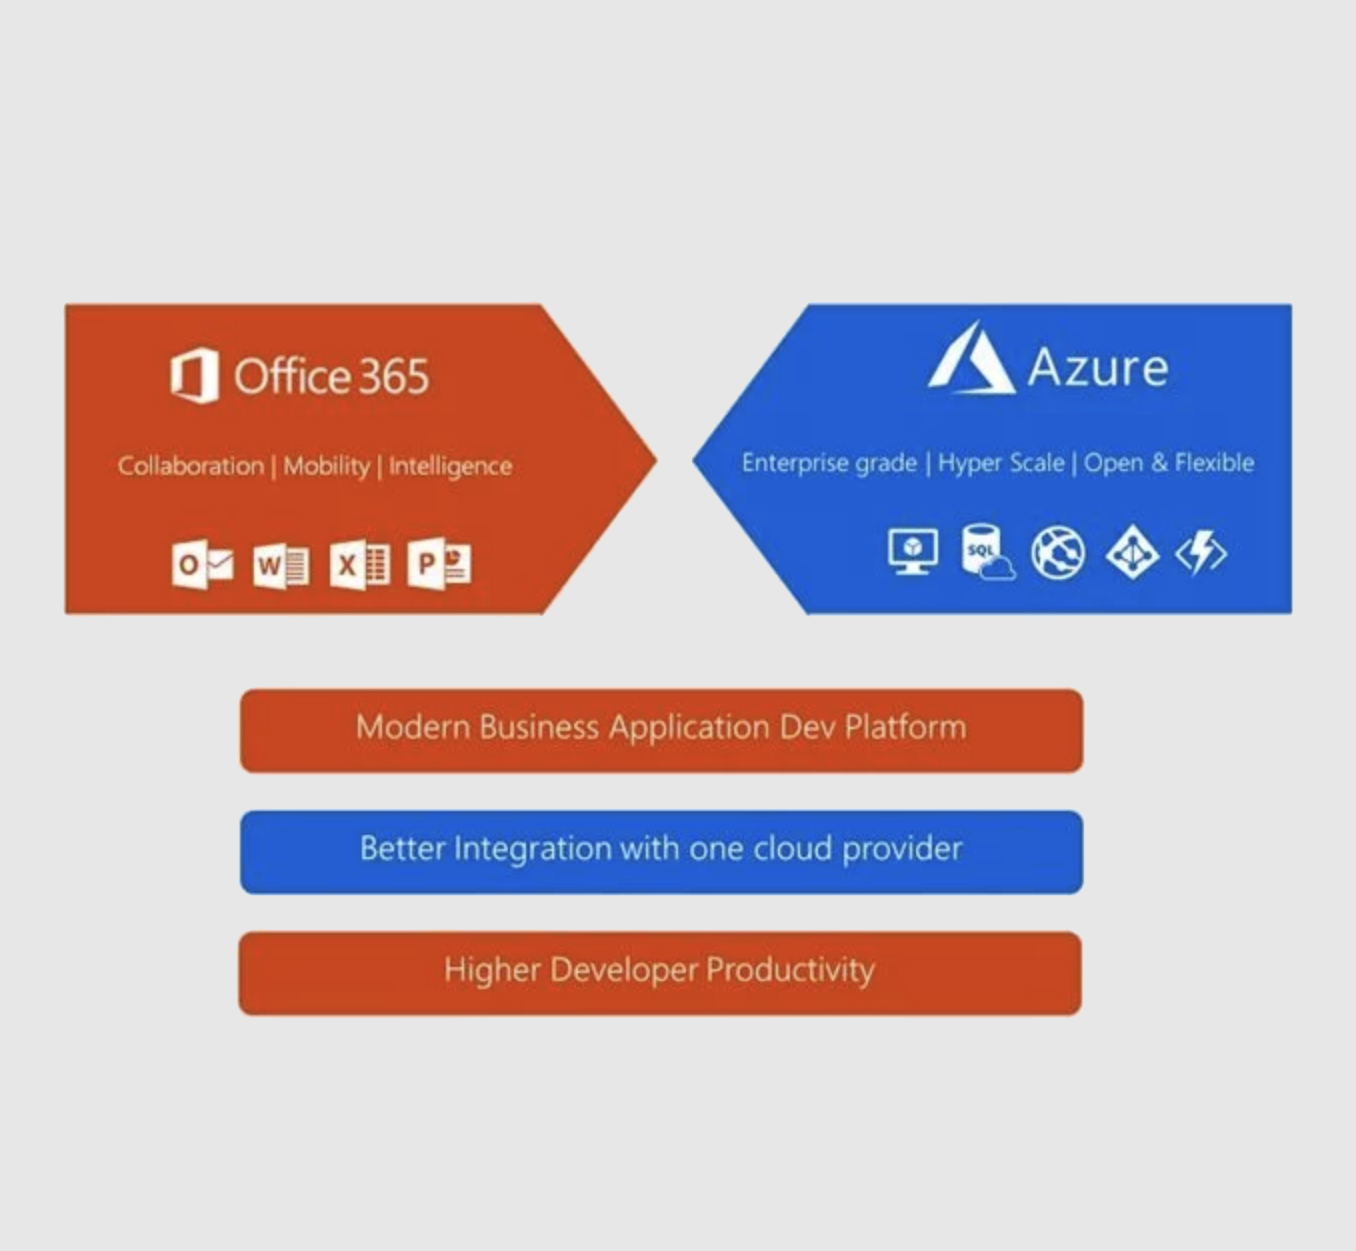 Graphic showing Office 365 apps integrated under one cloud provider, Microsoft Azure.